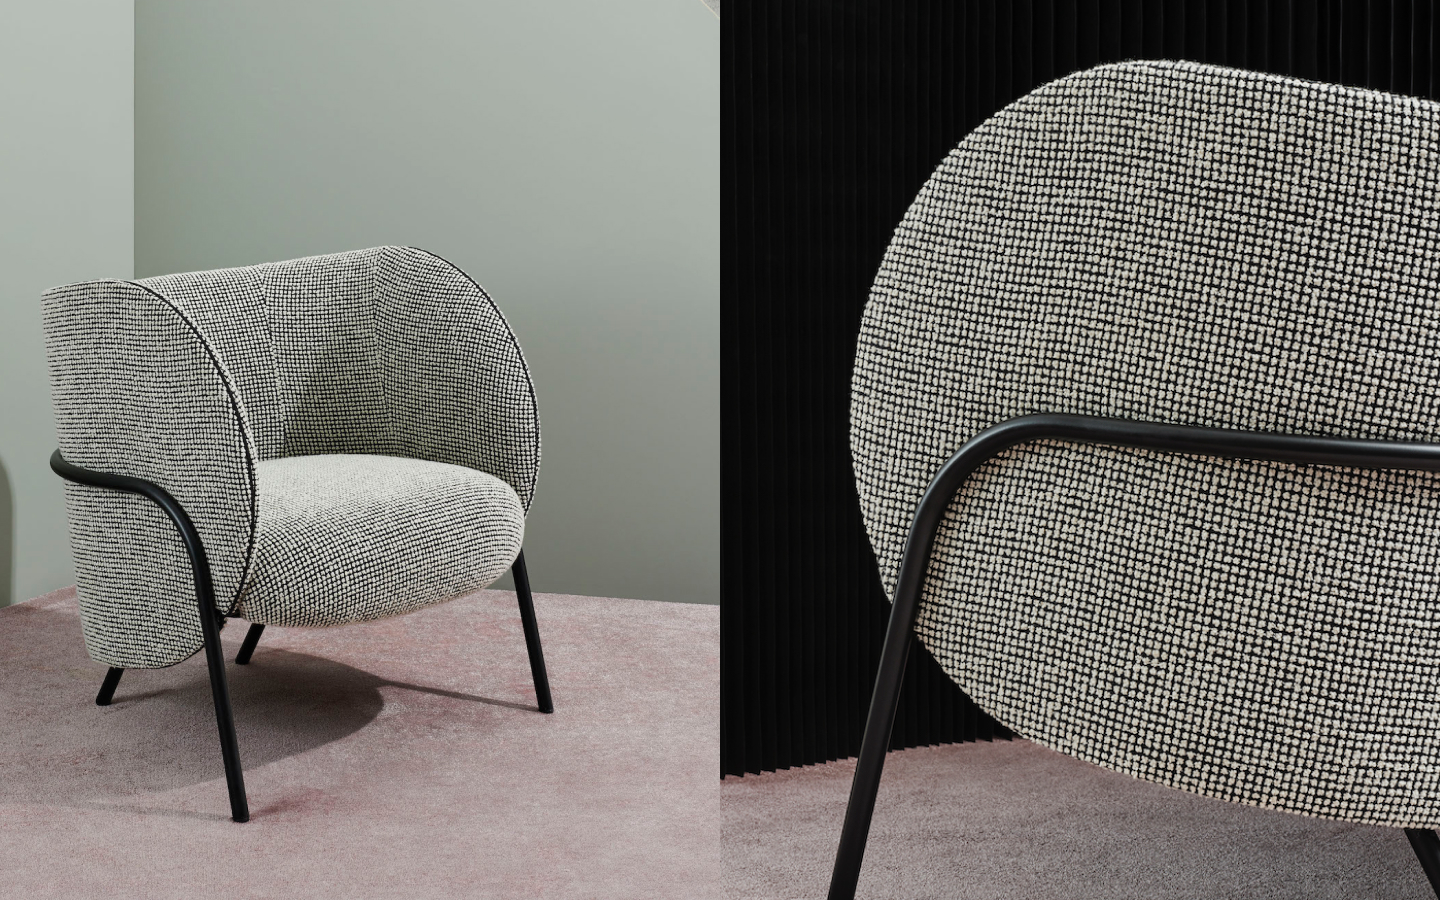 Curved Royce lounge chair with checked upholstery